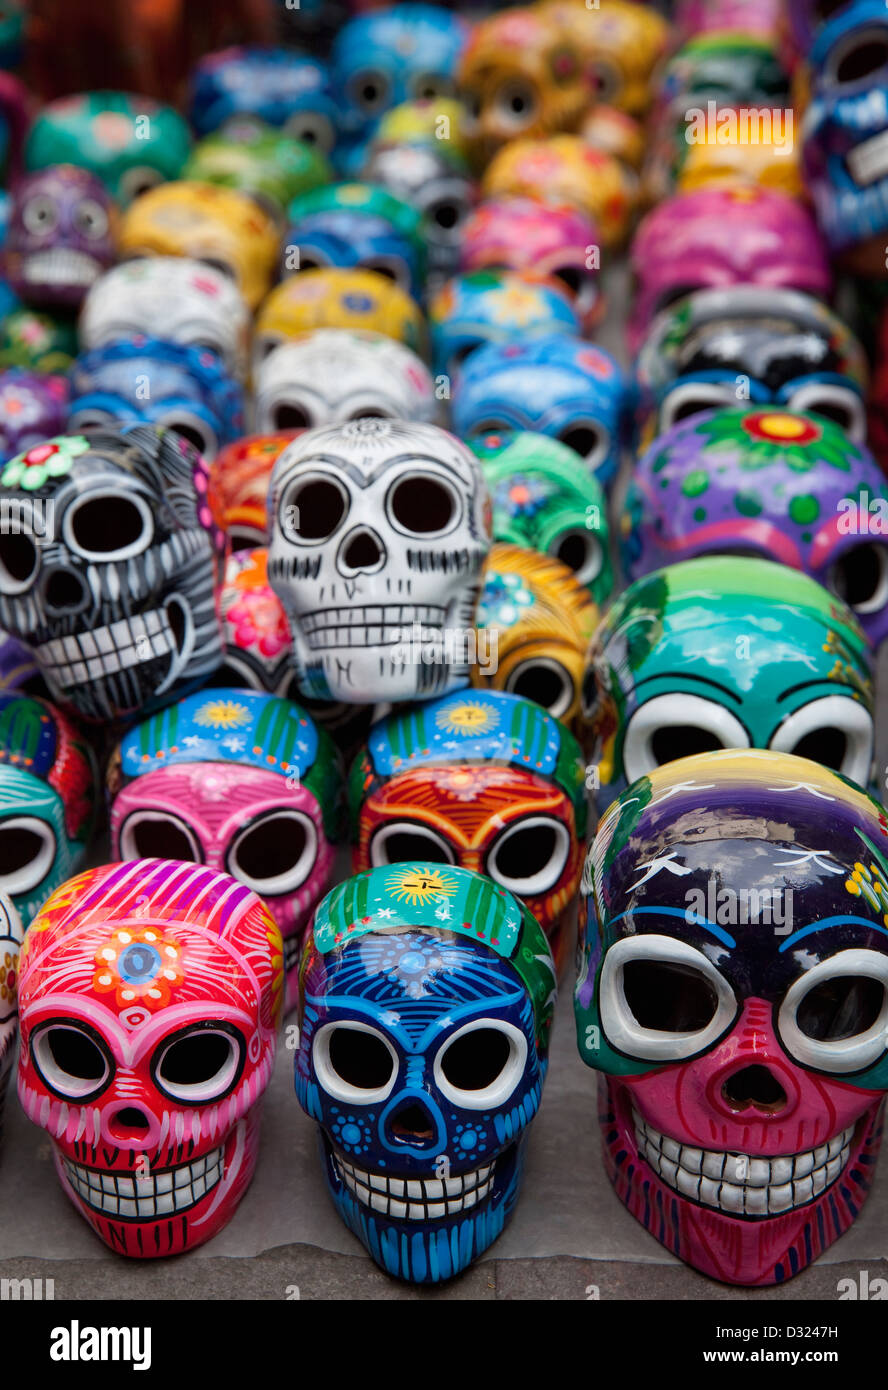 Mexican ceramic stock photos mexican ceramic stock images alamy rows of handpainted ceramic skulls for sale during day of the dead celebration at market on dailygadgetfo Images